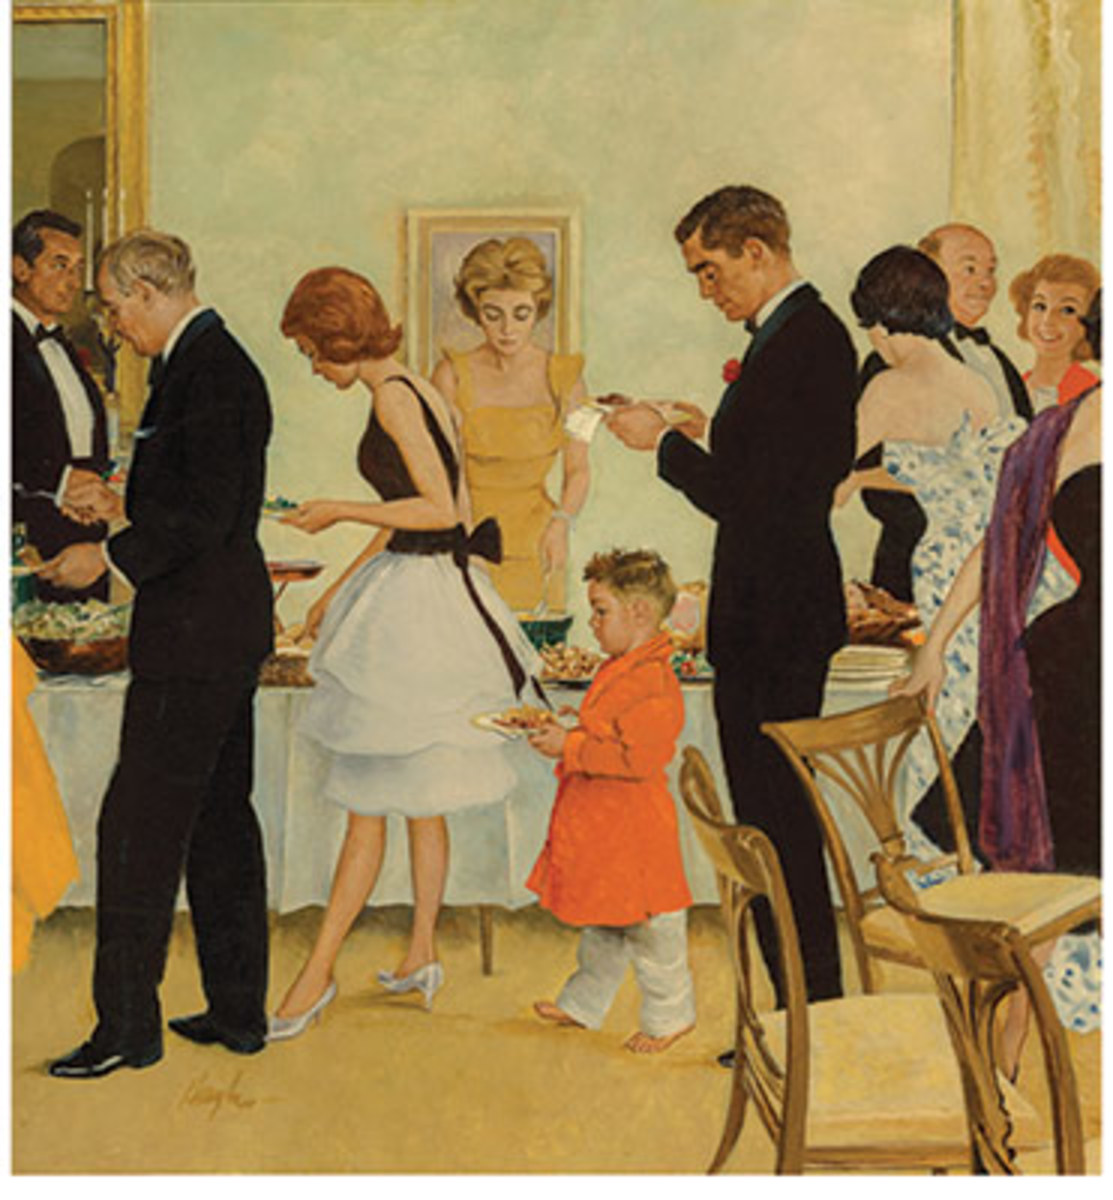 George HughesDinner Party, The Saturday Evening Post cover, November 11, 1961, sold for $87,500 and was a new auction record for the artist.